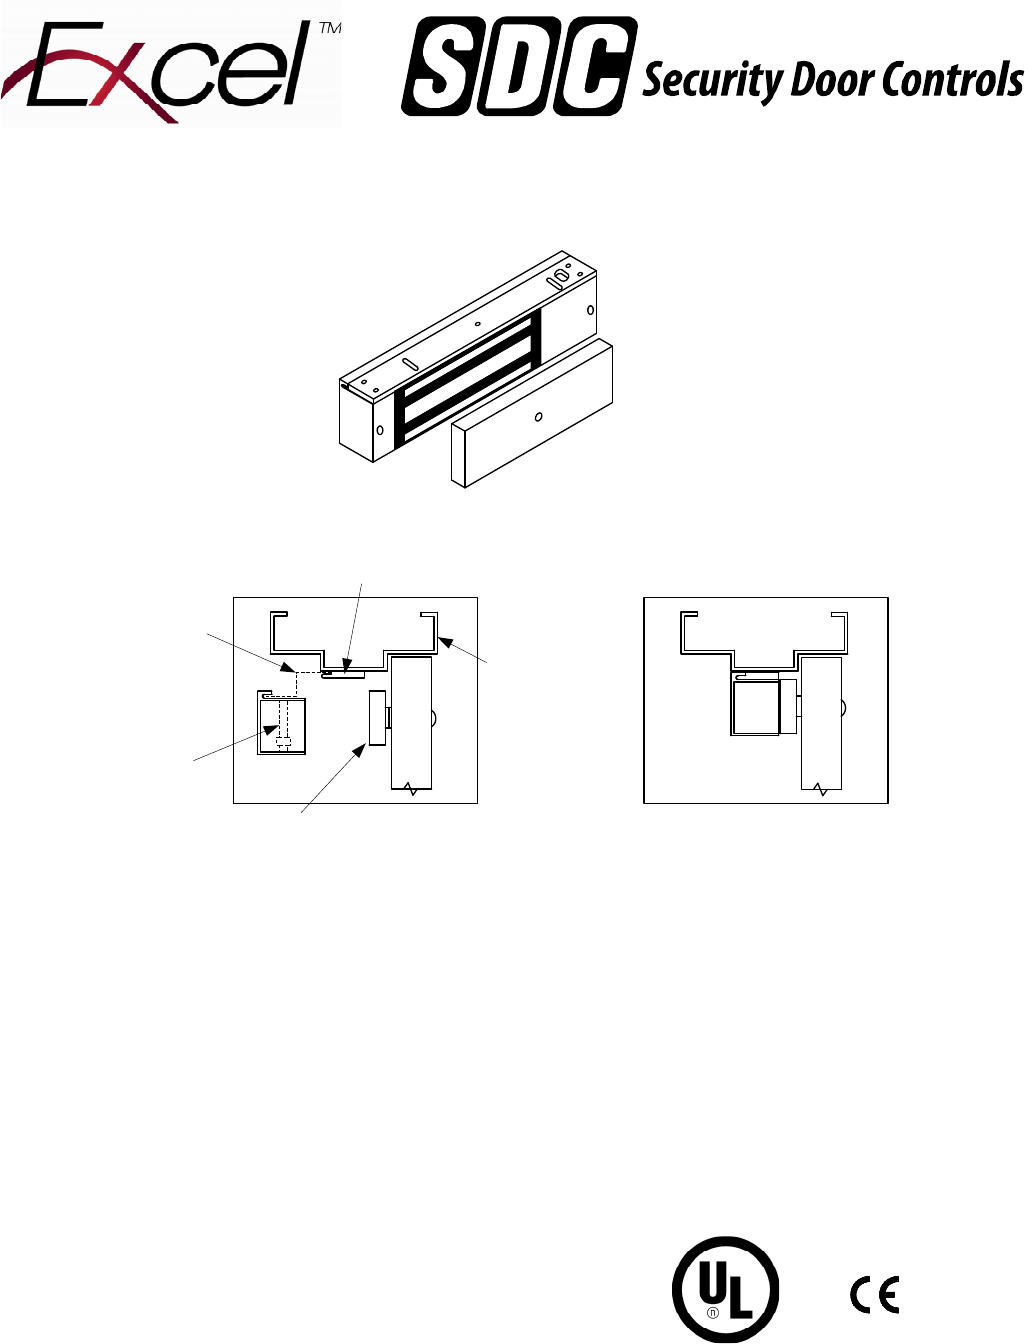 Sdc Inst E1200 Installation Instructions Series Magnetic Lock Spdt Relay Wiring Diagram